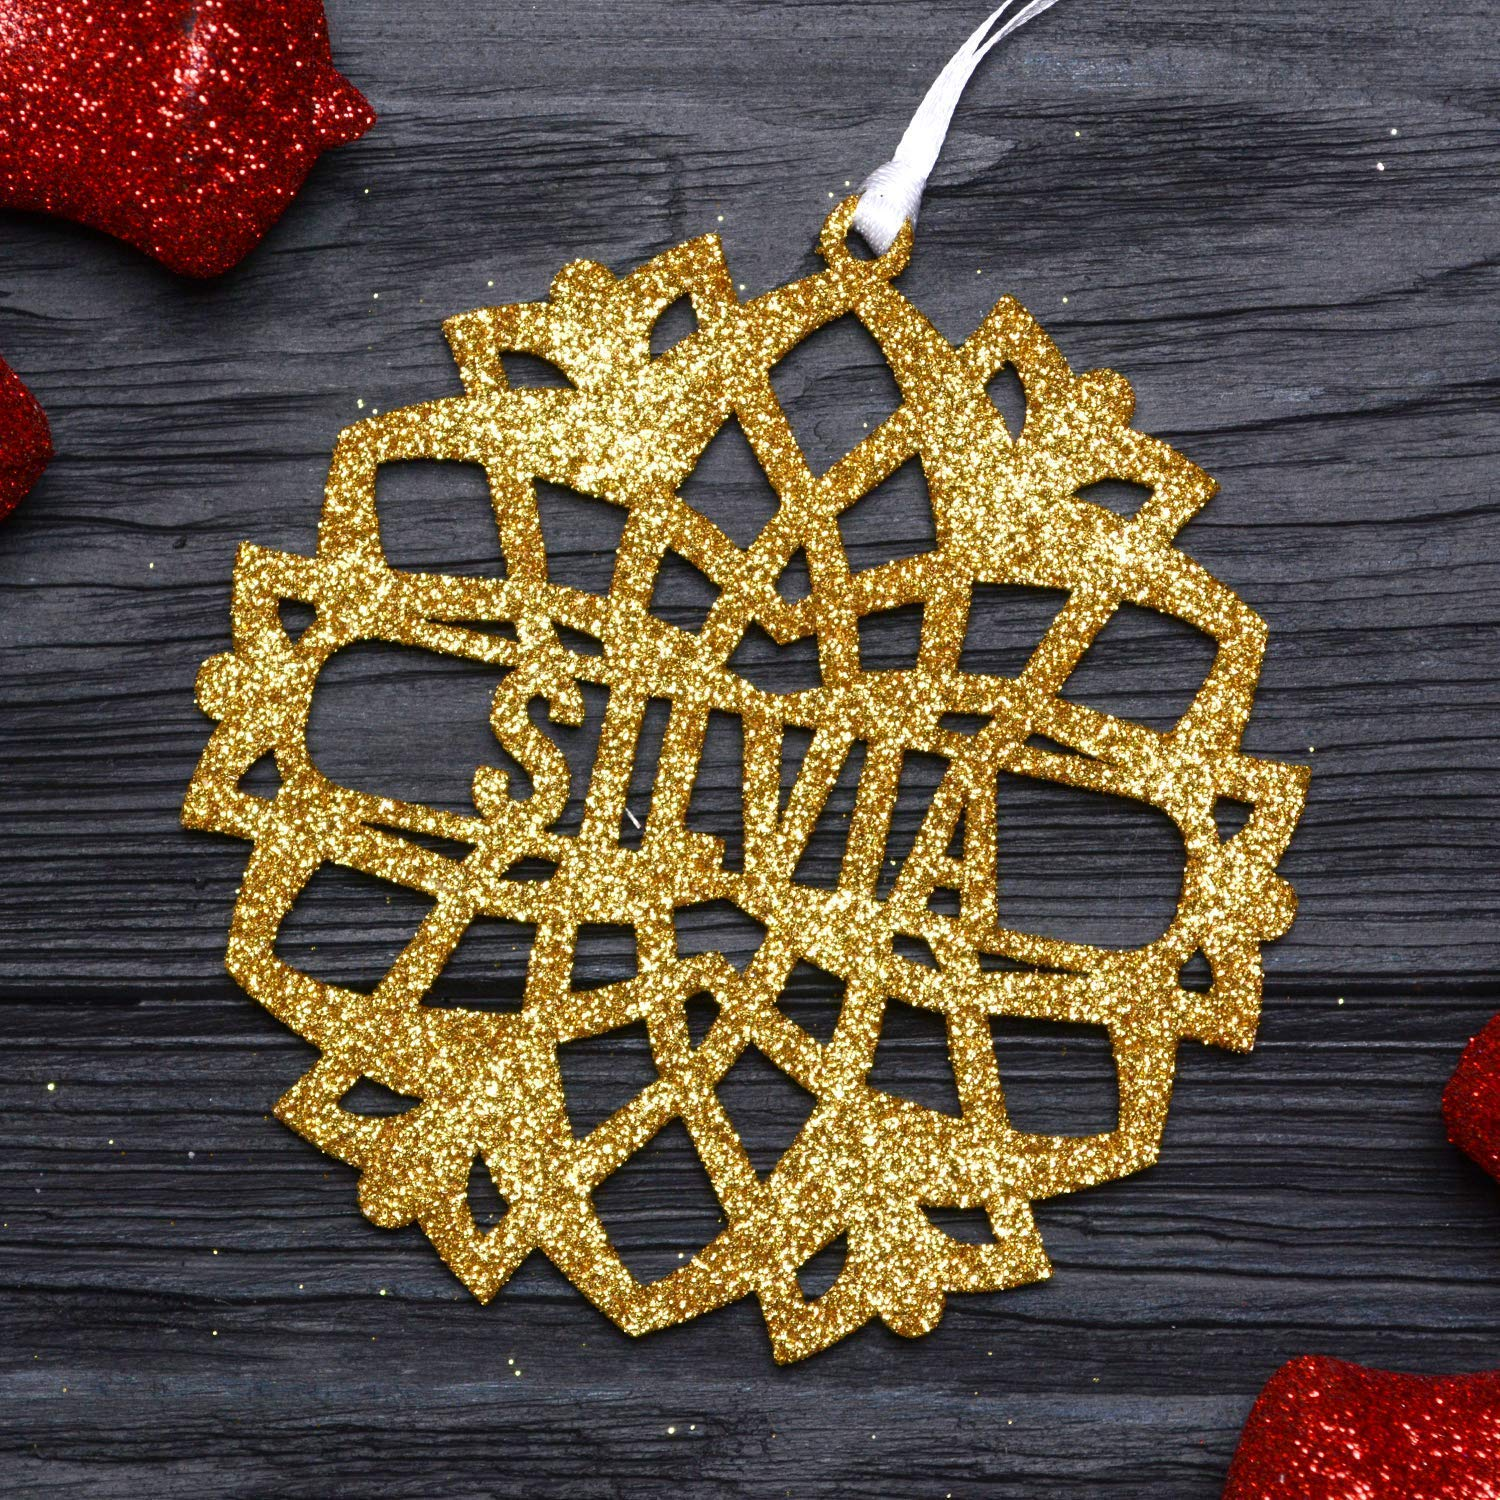 Personalized Christmas Snowflake Ornament/Custom Gold Glitter Snowflake, Laser Cut Wooden Ornaments, Christmas Tree Decor, Xmas Gifts